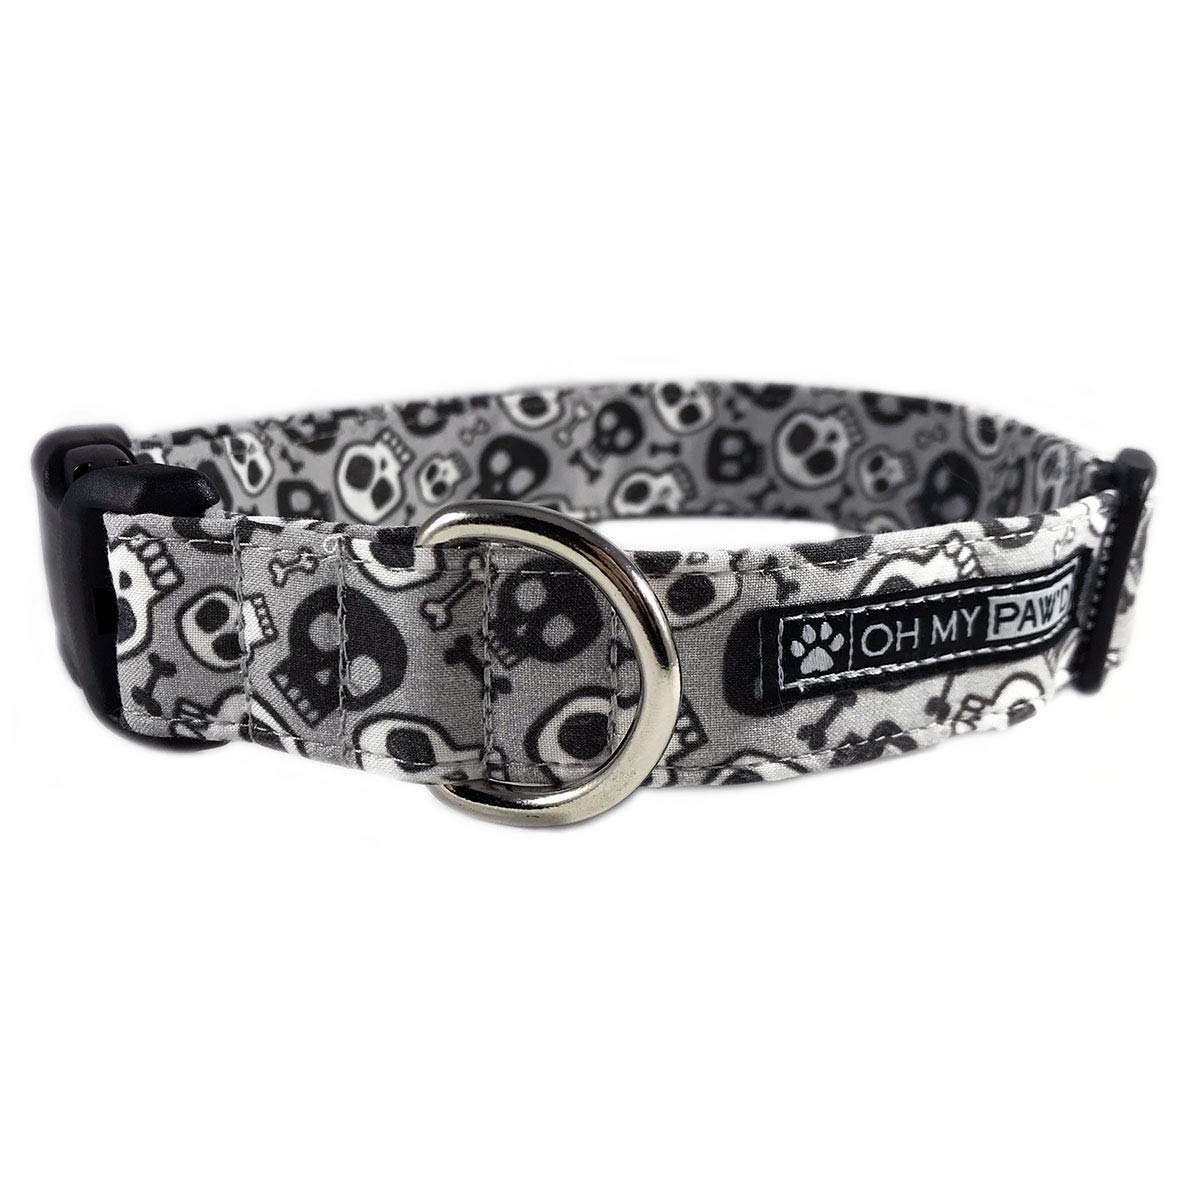 Skull and Bones Dog or Cat Collar for Pets Size Small 3/4 Wide and 11-16 Long by Oh My Paw'd